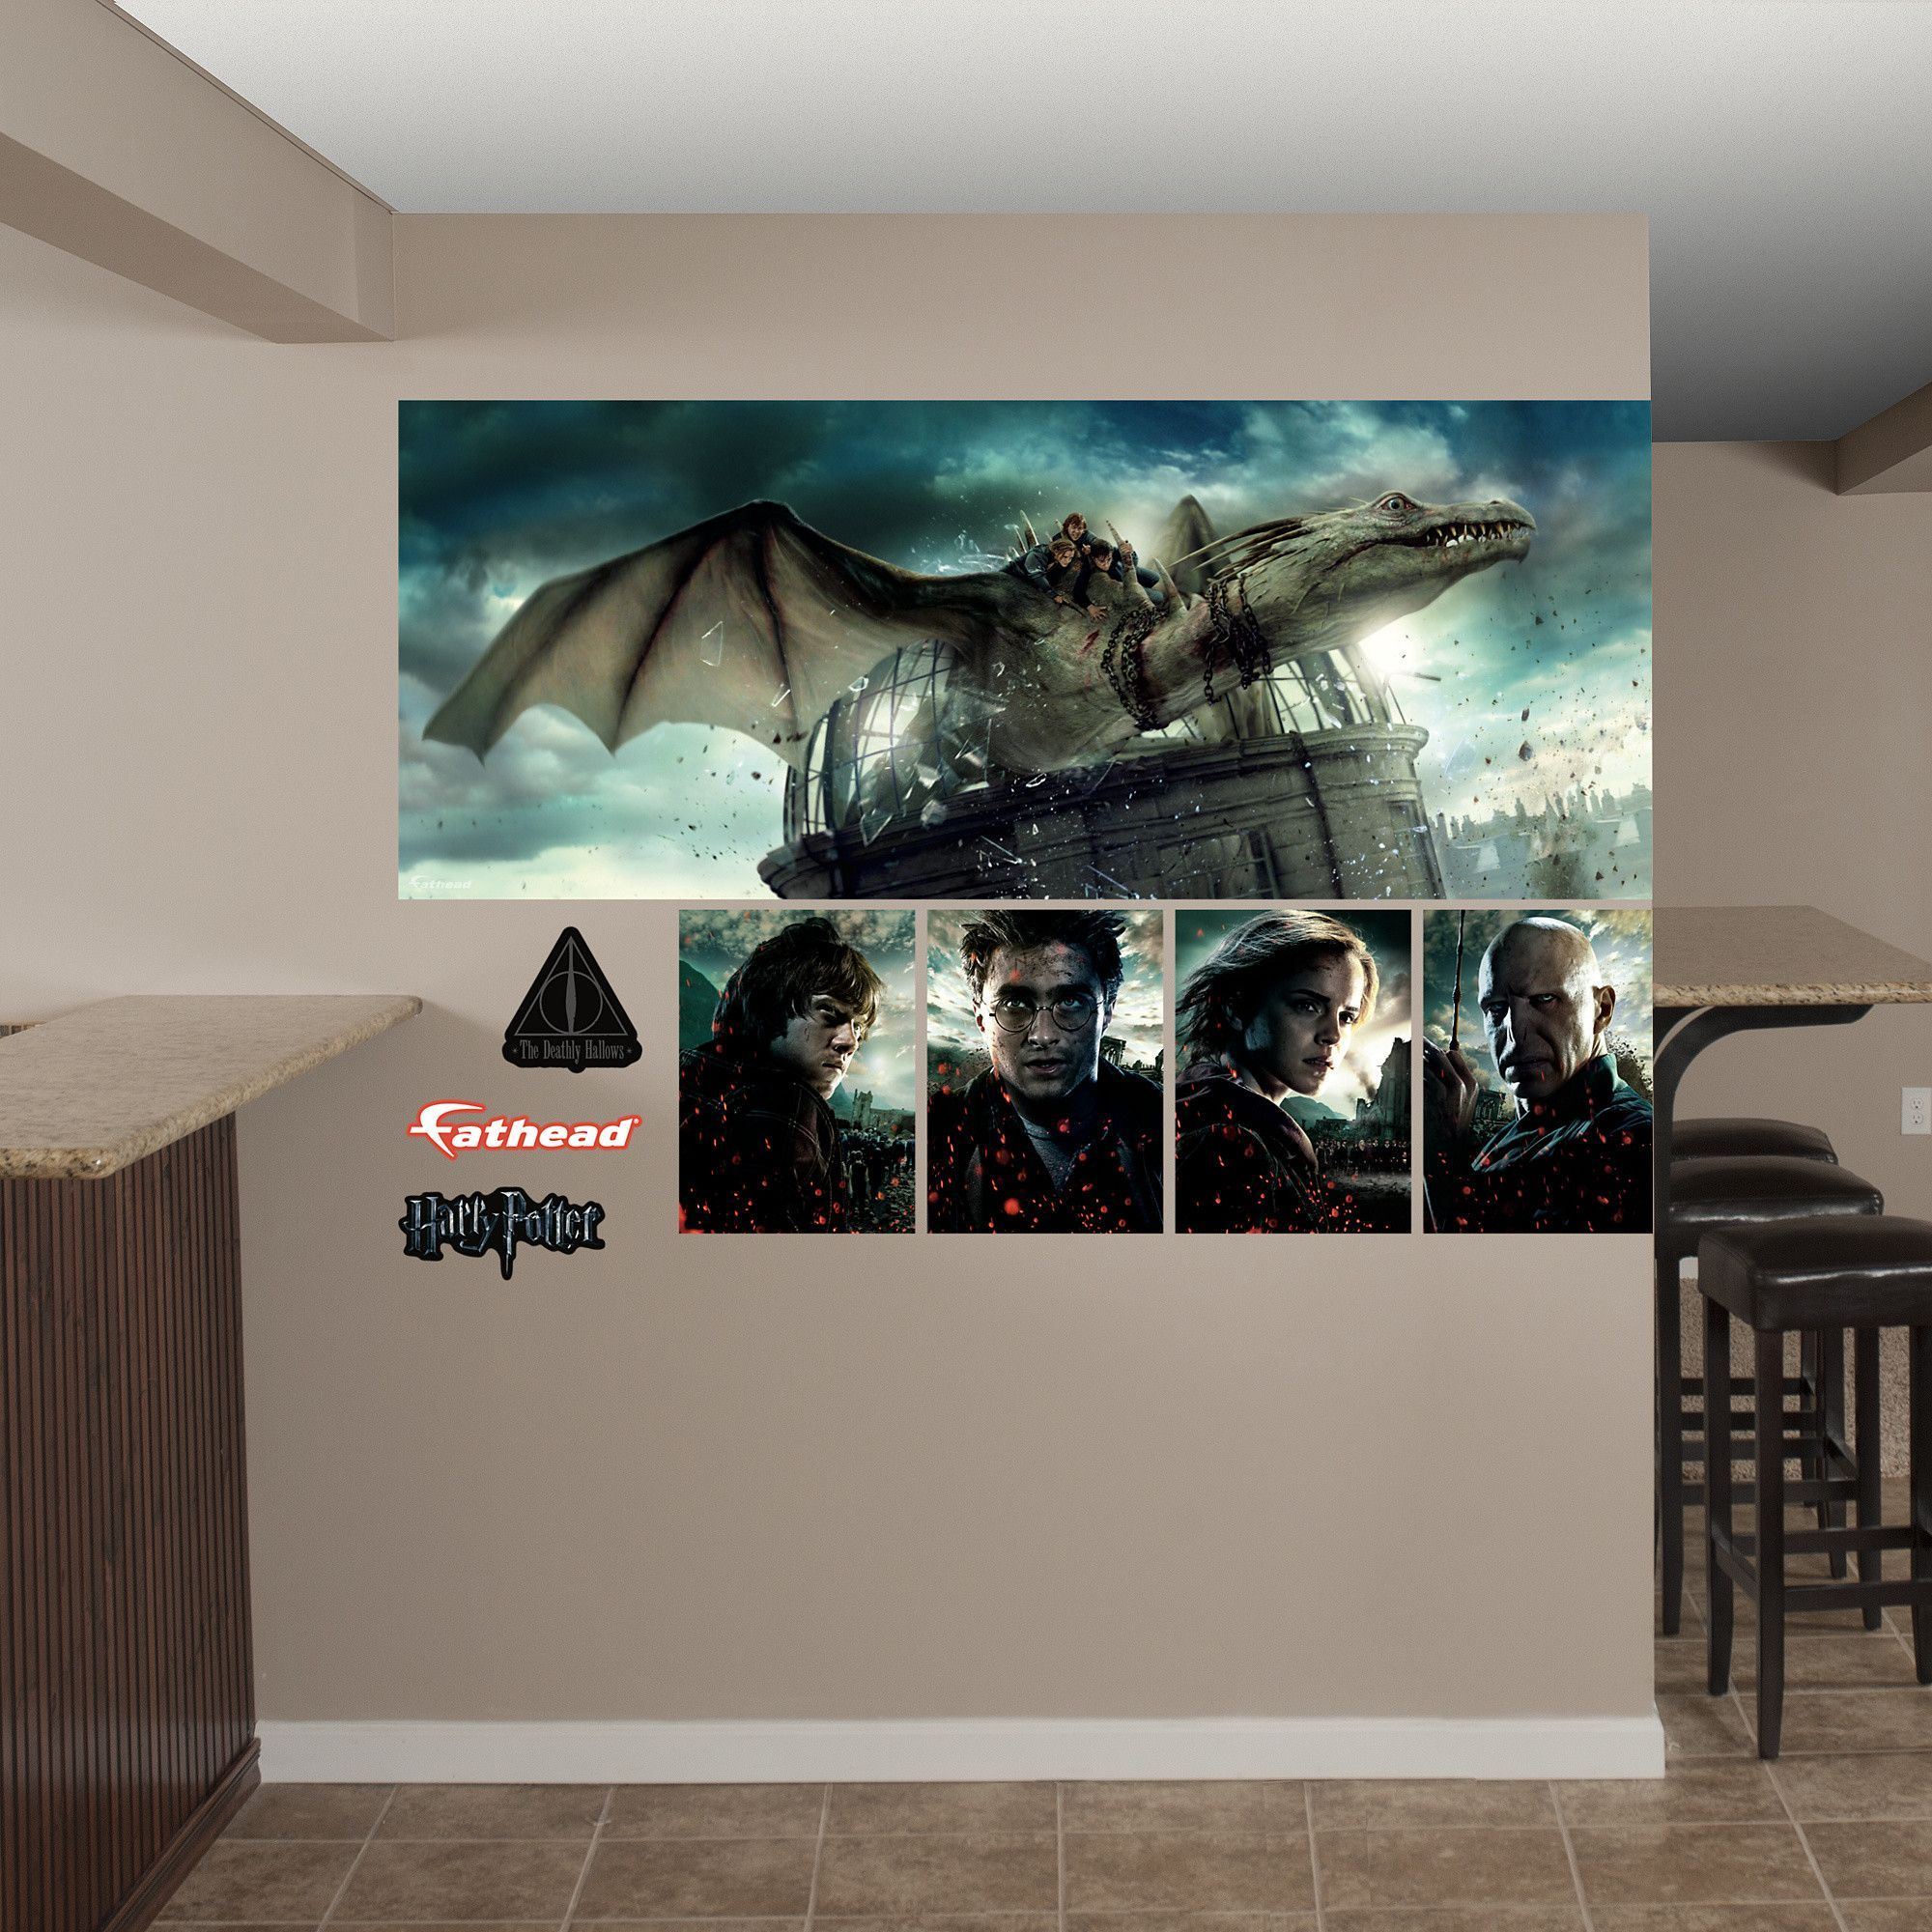 Harry Potter Wall Murals · Harry Potter Wall Murals